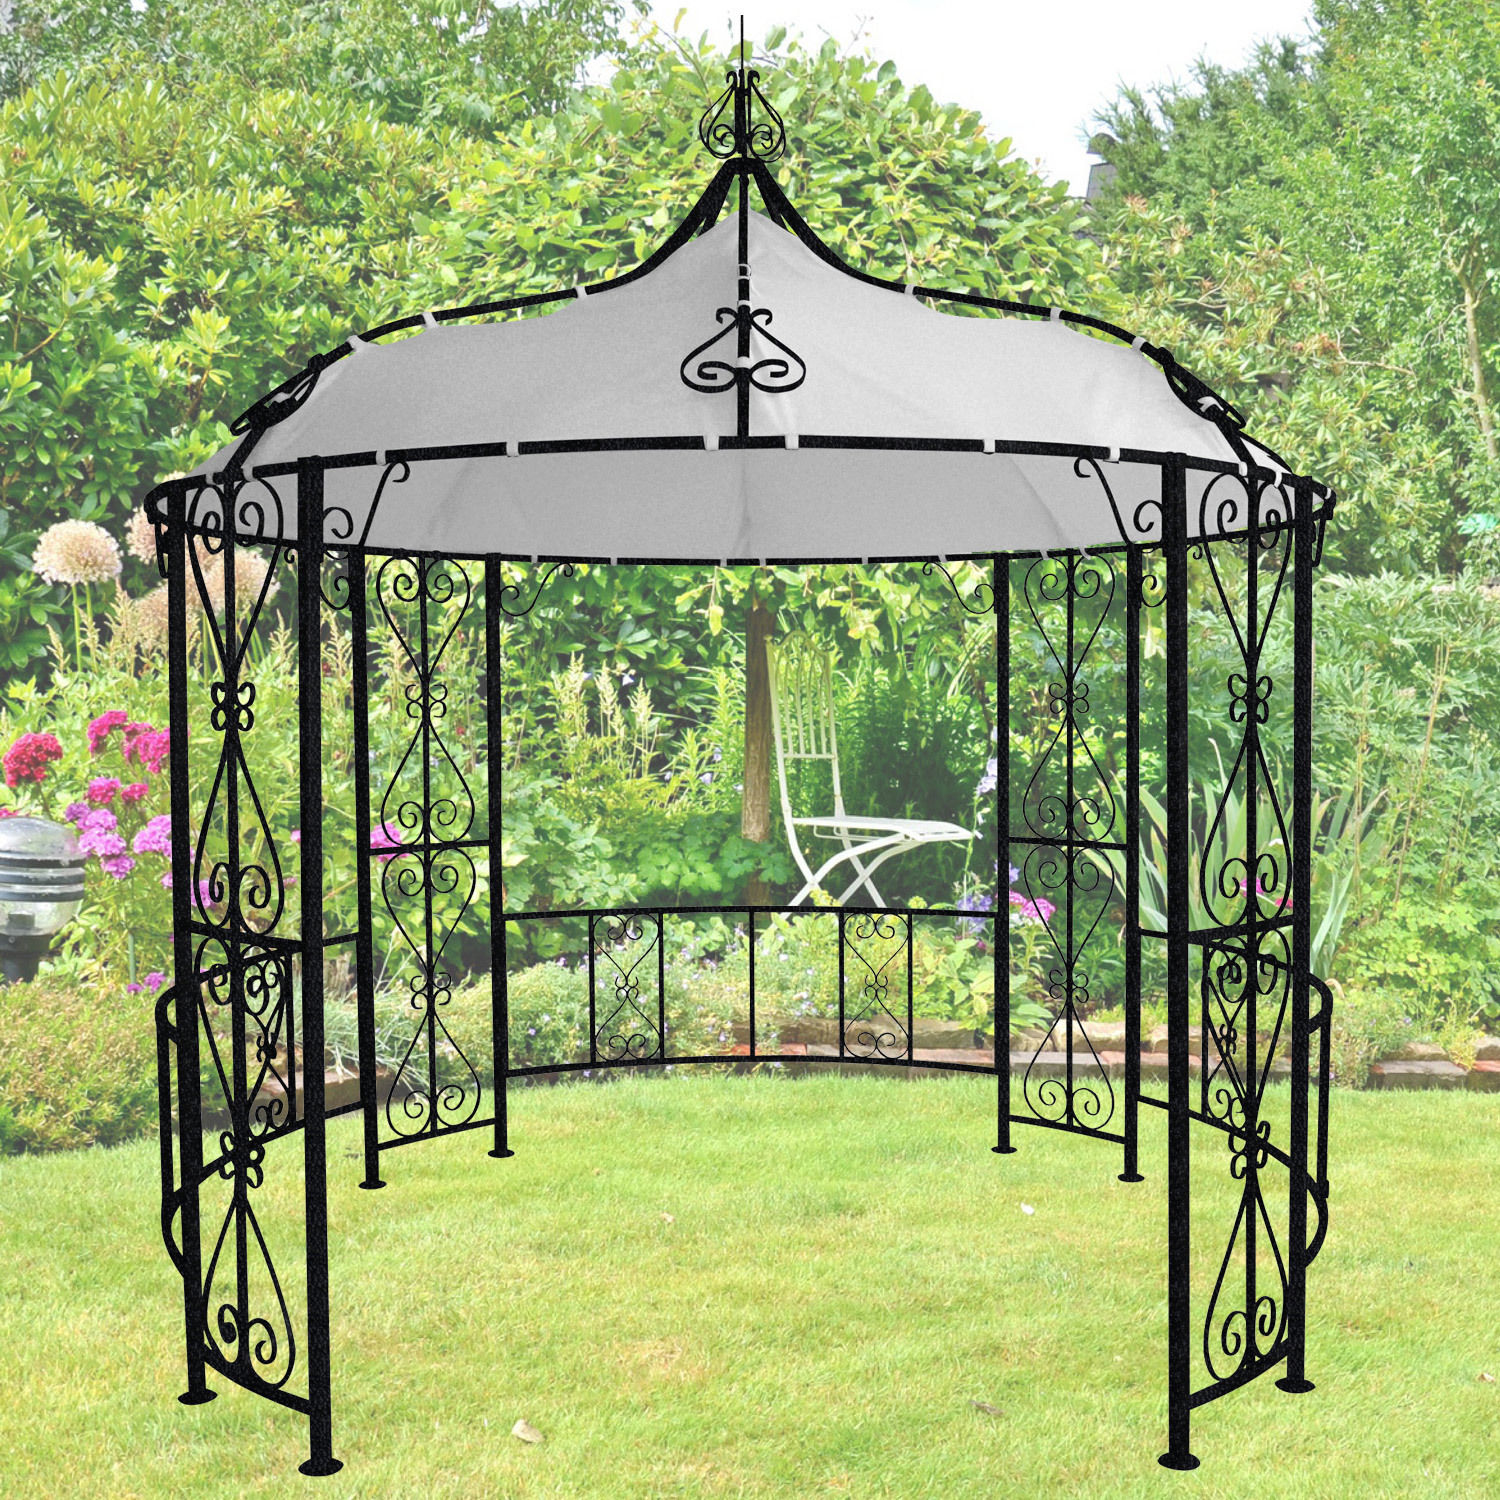 miganeo gazebo metall pavillon pavillion zelt 3x3x2 9m. Black Bedroom Furniture Sets. Home Design Ideas